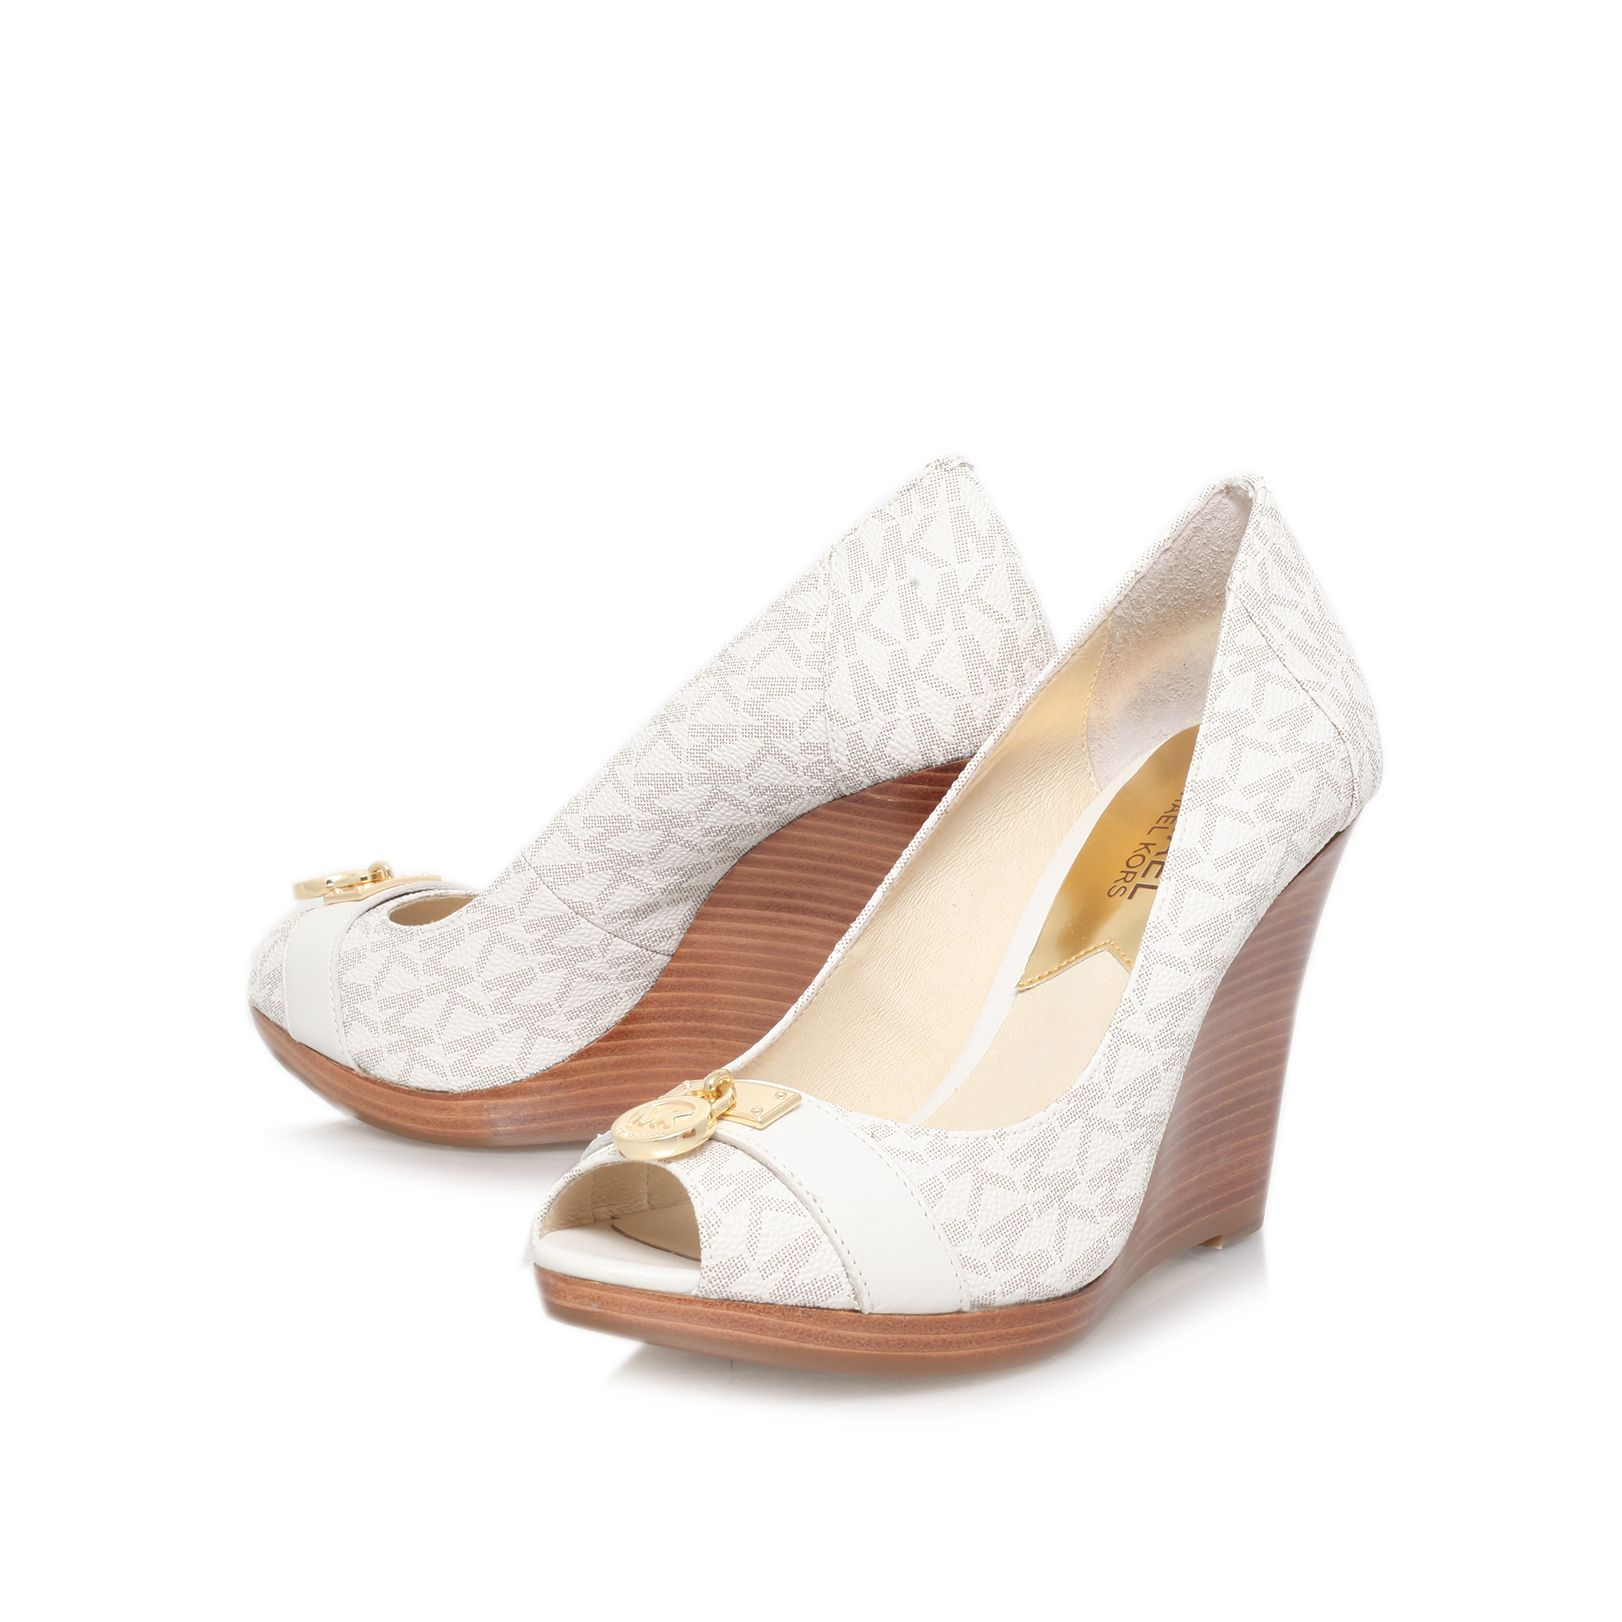 michael kors hamilton wedge peep toe court shoes in